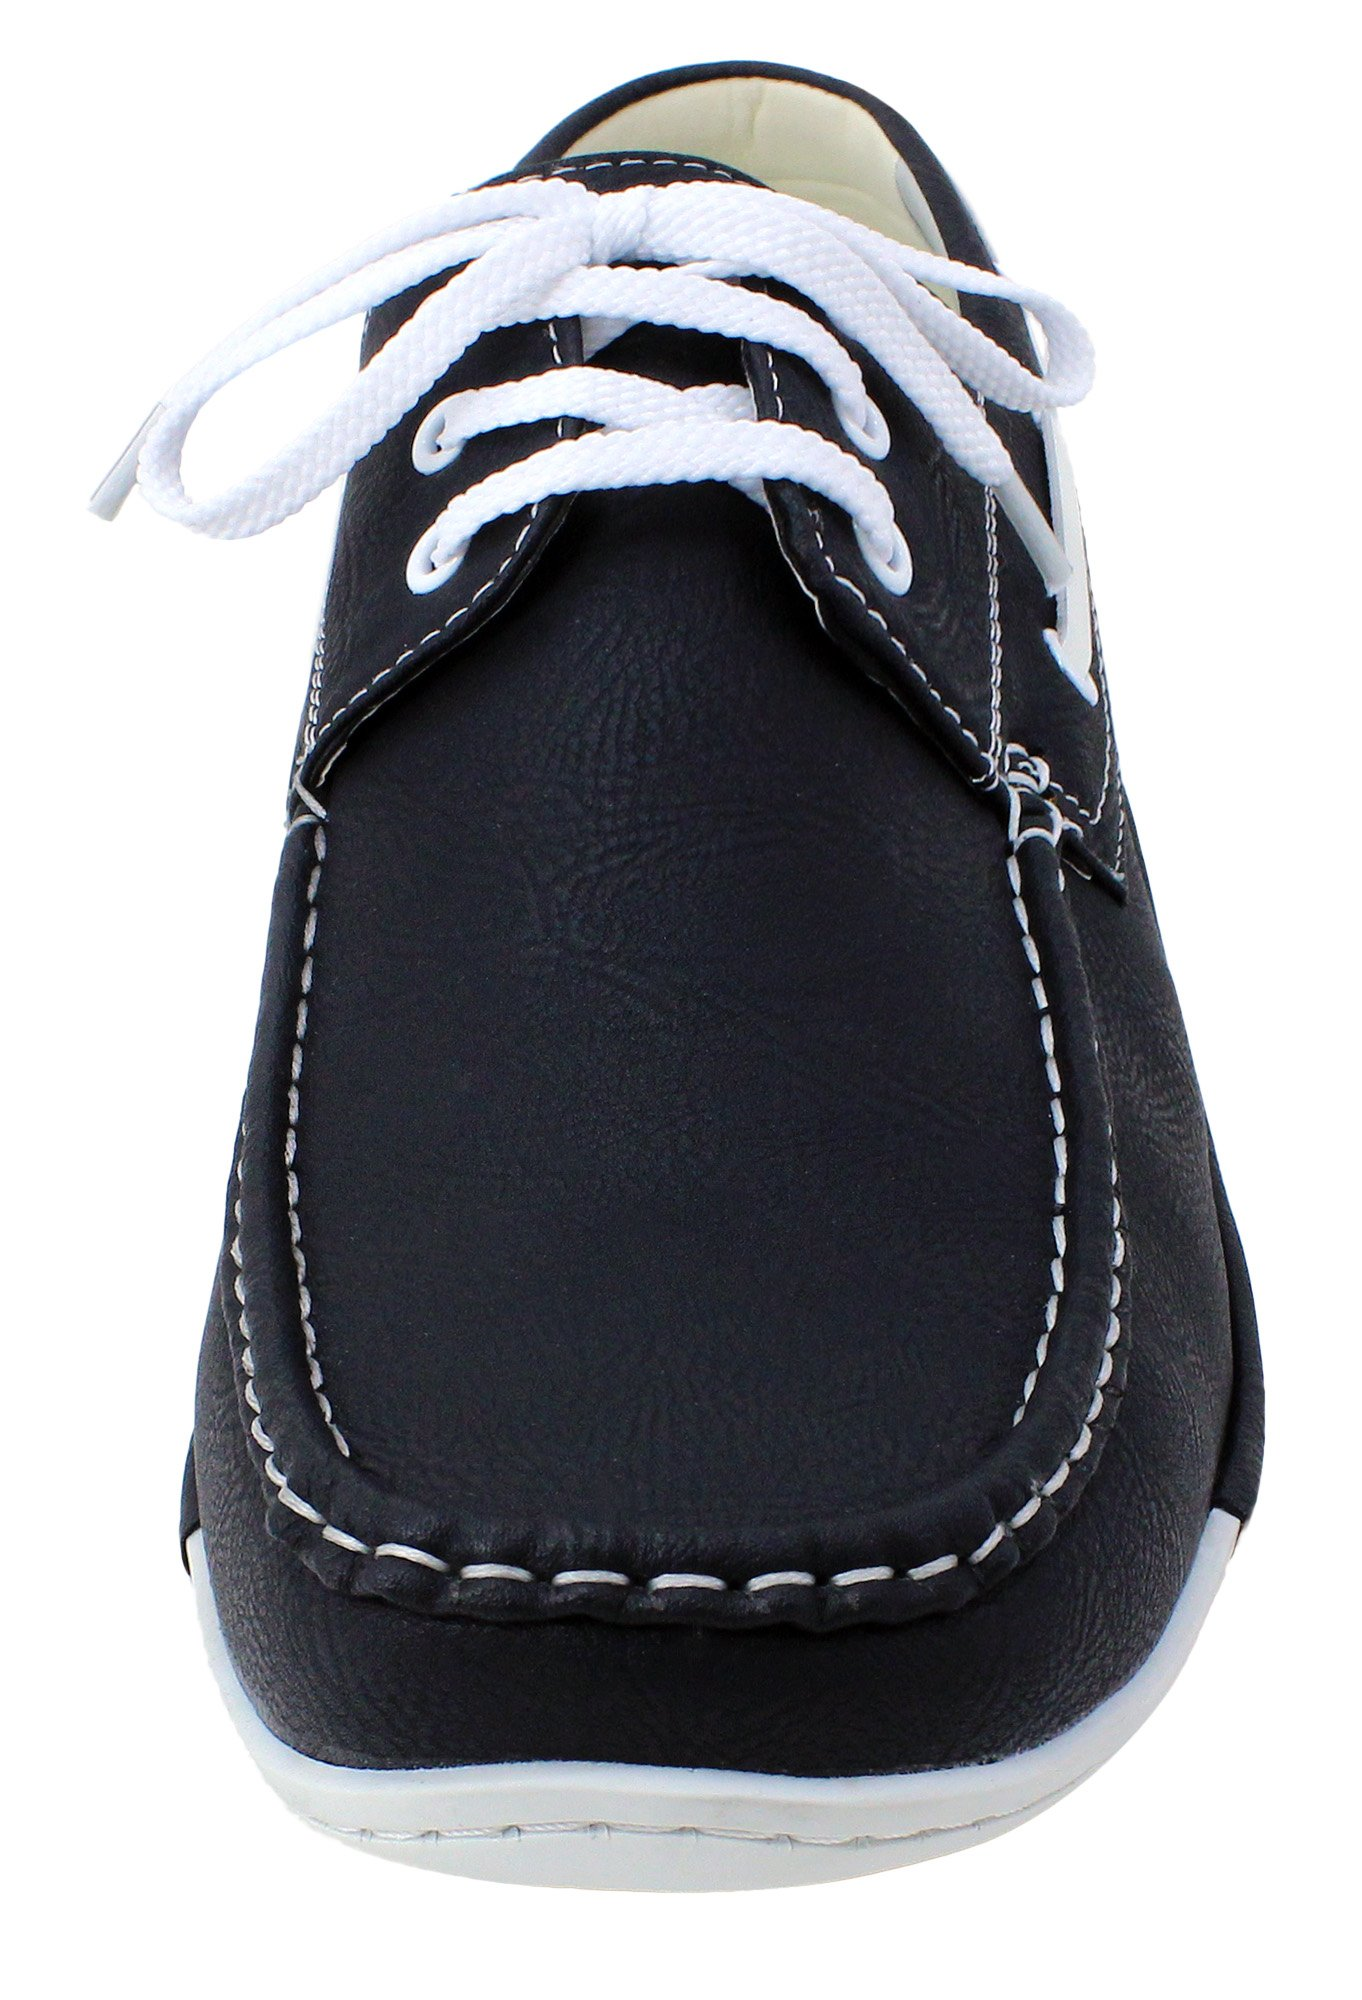 Enimay Men's Free Slip-On Loafer Boat Shoe PU Leather Fine Crafted Lounge Black White 8.5 by Enimay (Image #2)